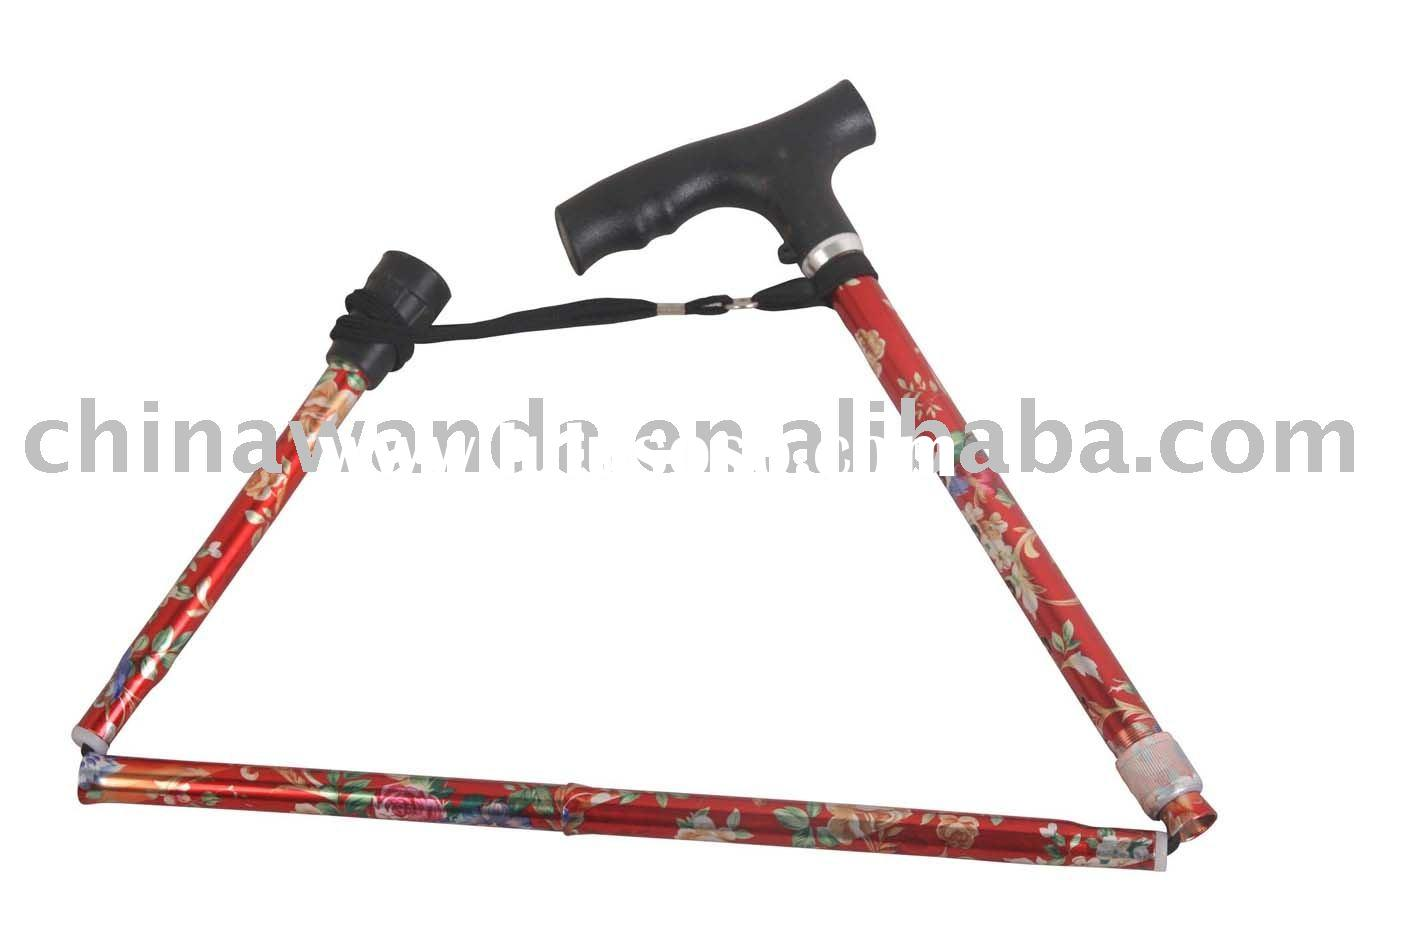 Five-section floral folding walking stick